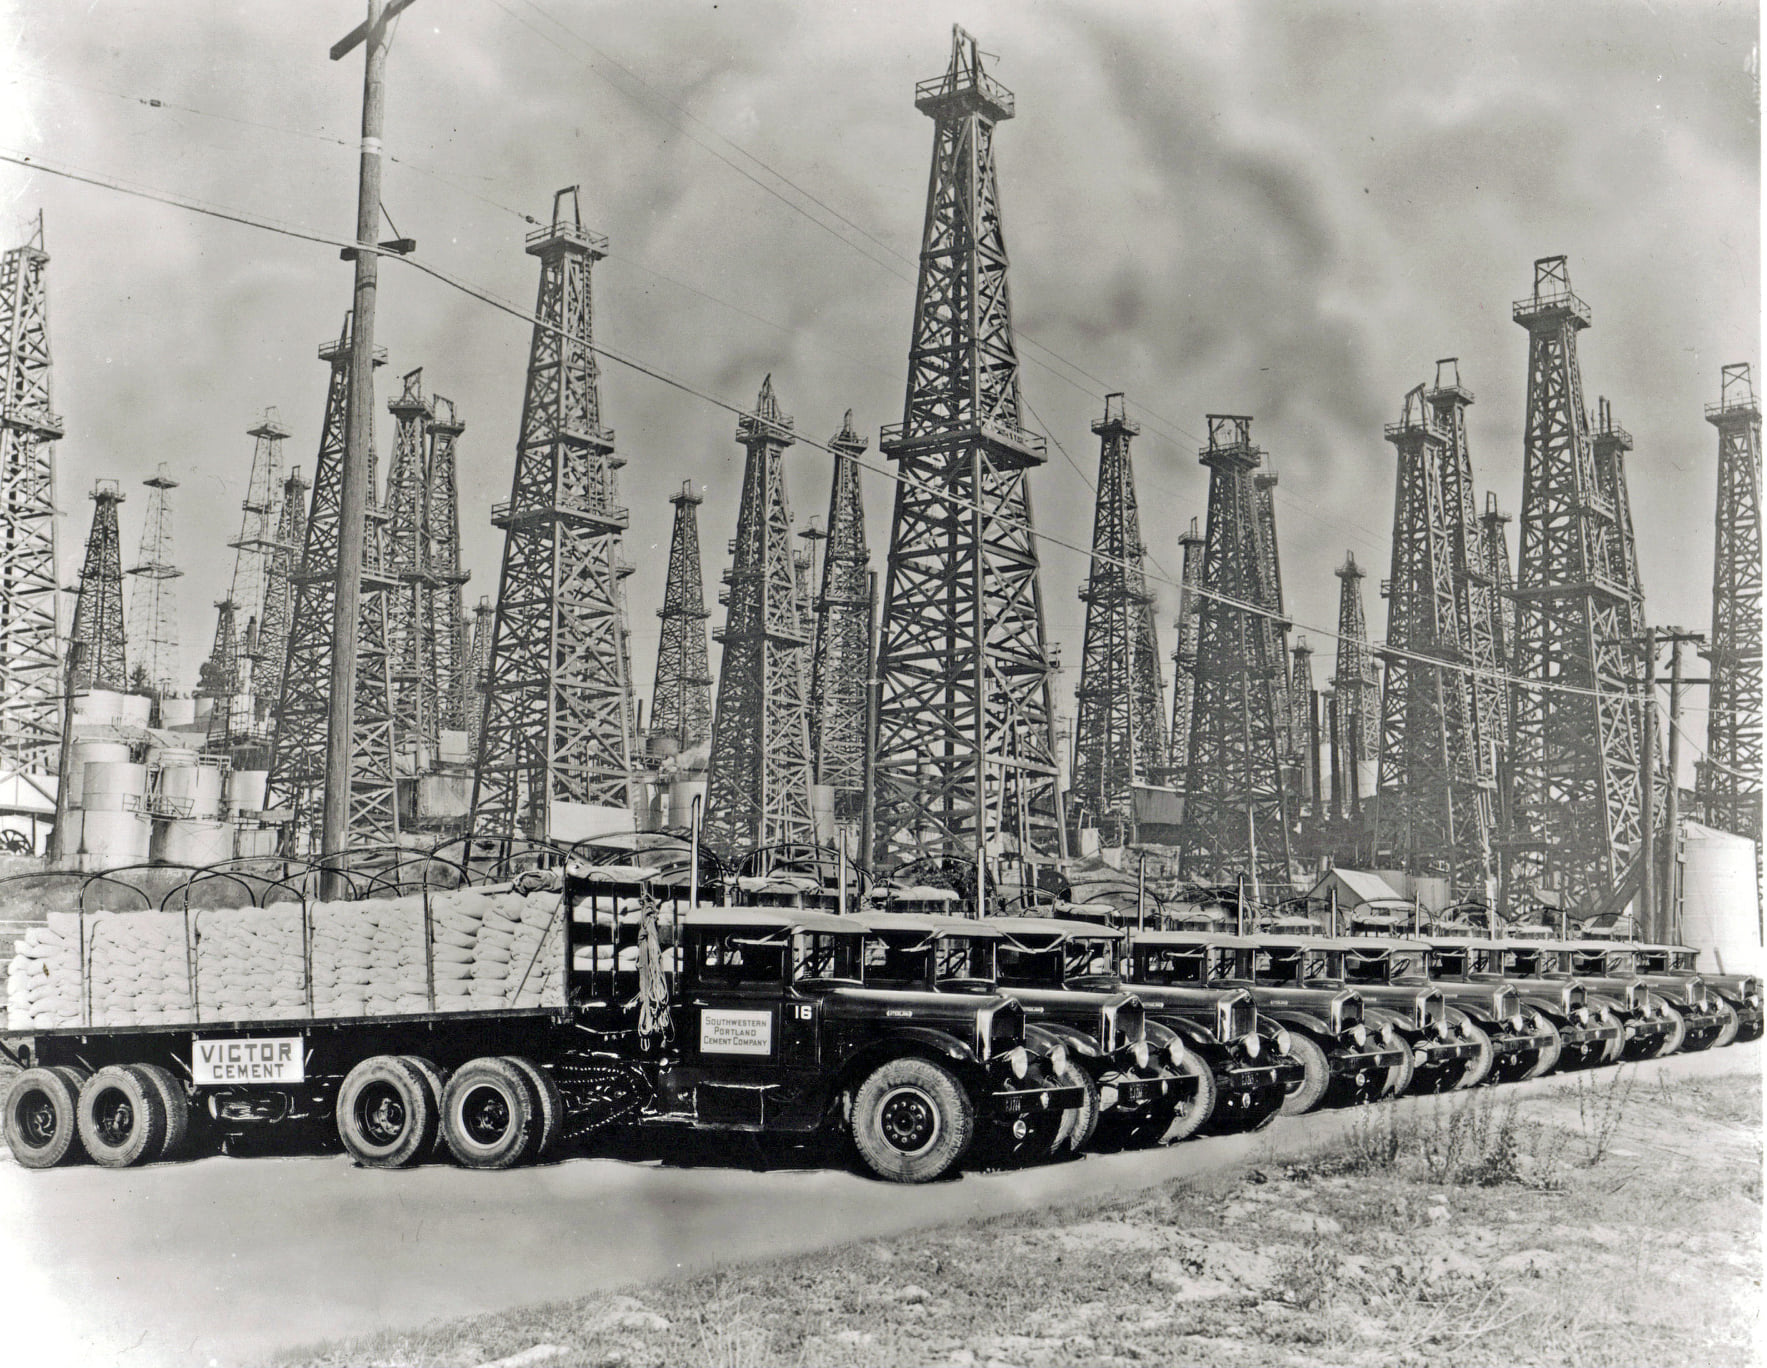 Sterling-FC-1935-models-working-for-Victor-Portland-Cement-in-California-3